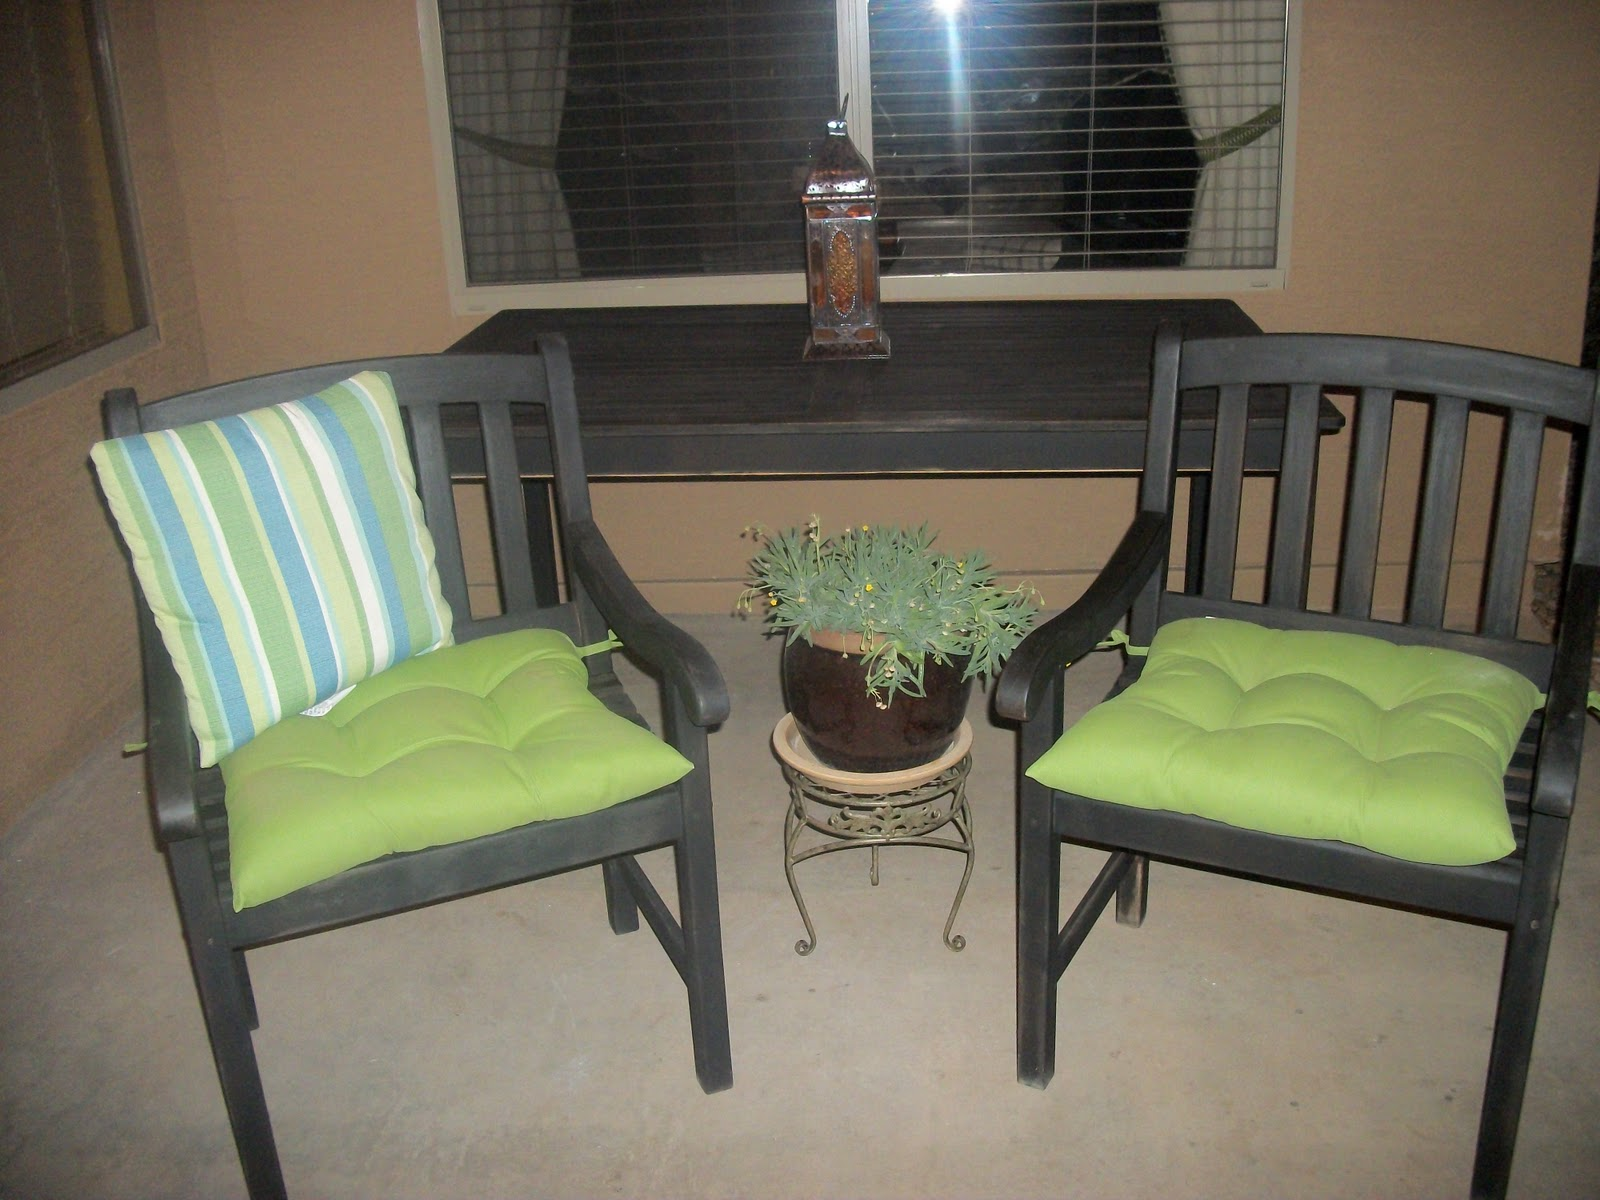 Designer Dropout Patio Table W 2 Chairs And Cushions SOLD